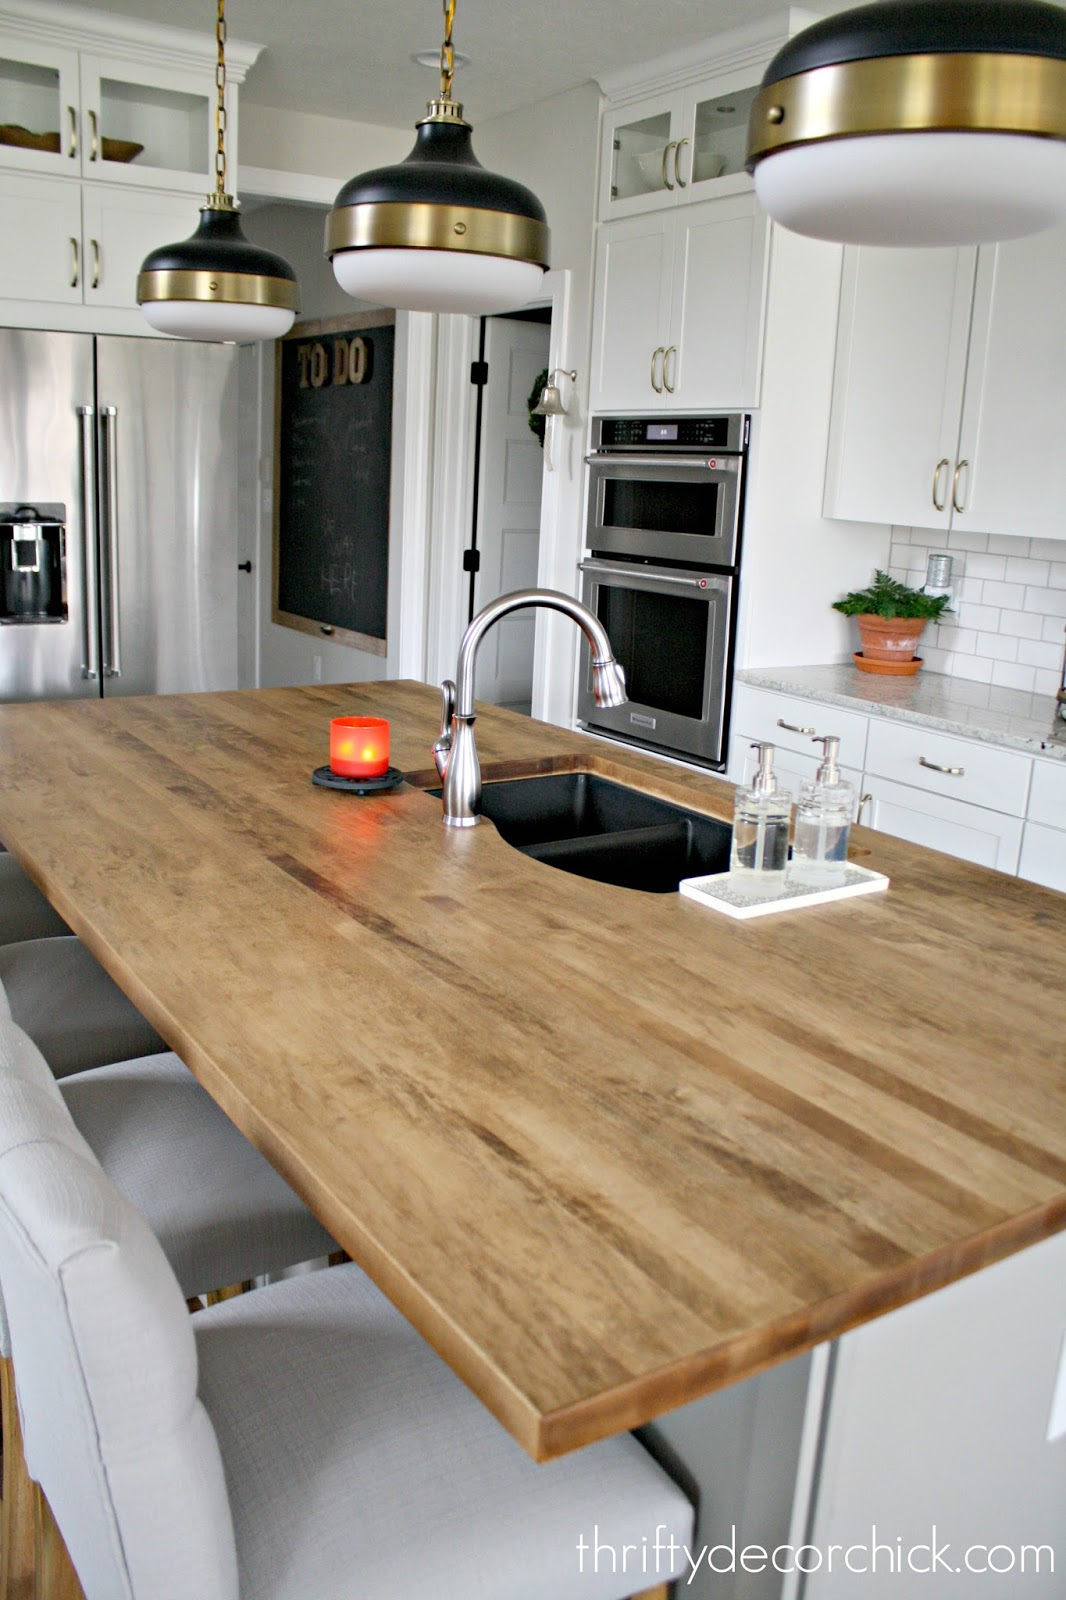 How To Finish And Protect Wood Counters Around A Sink From